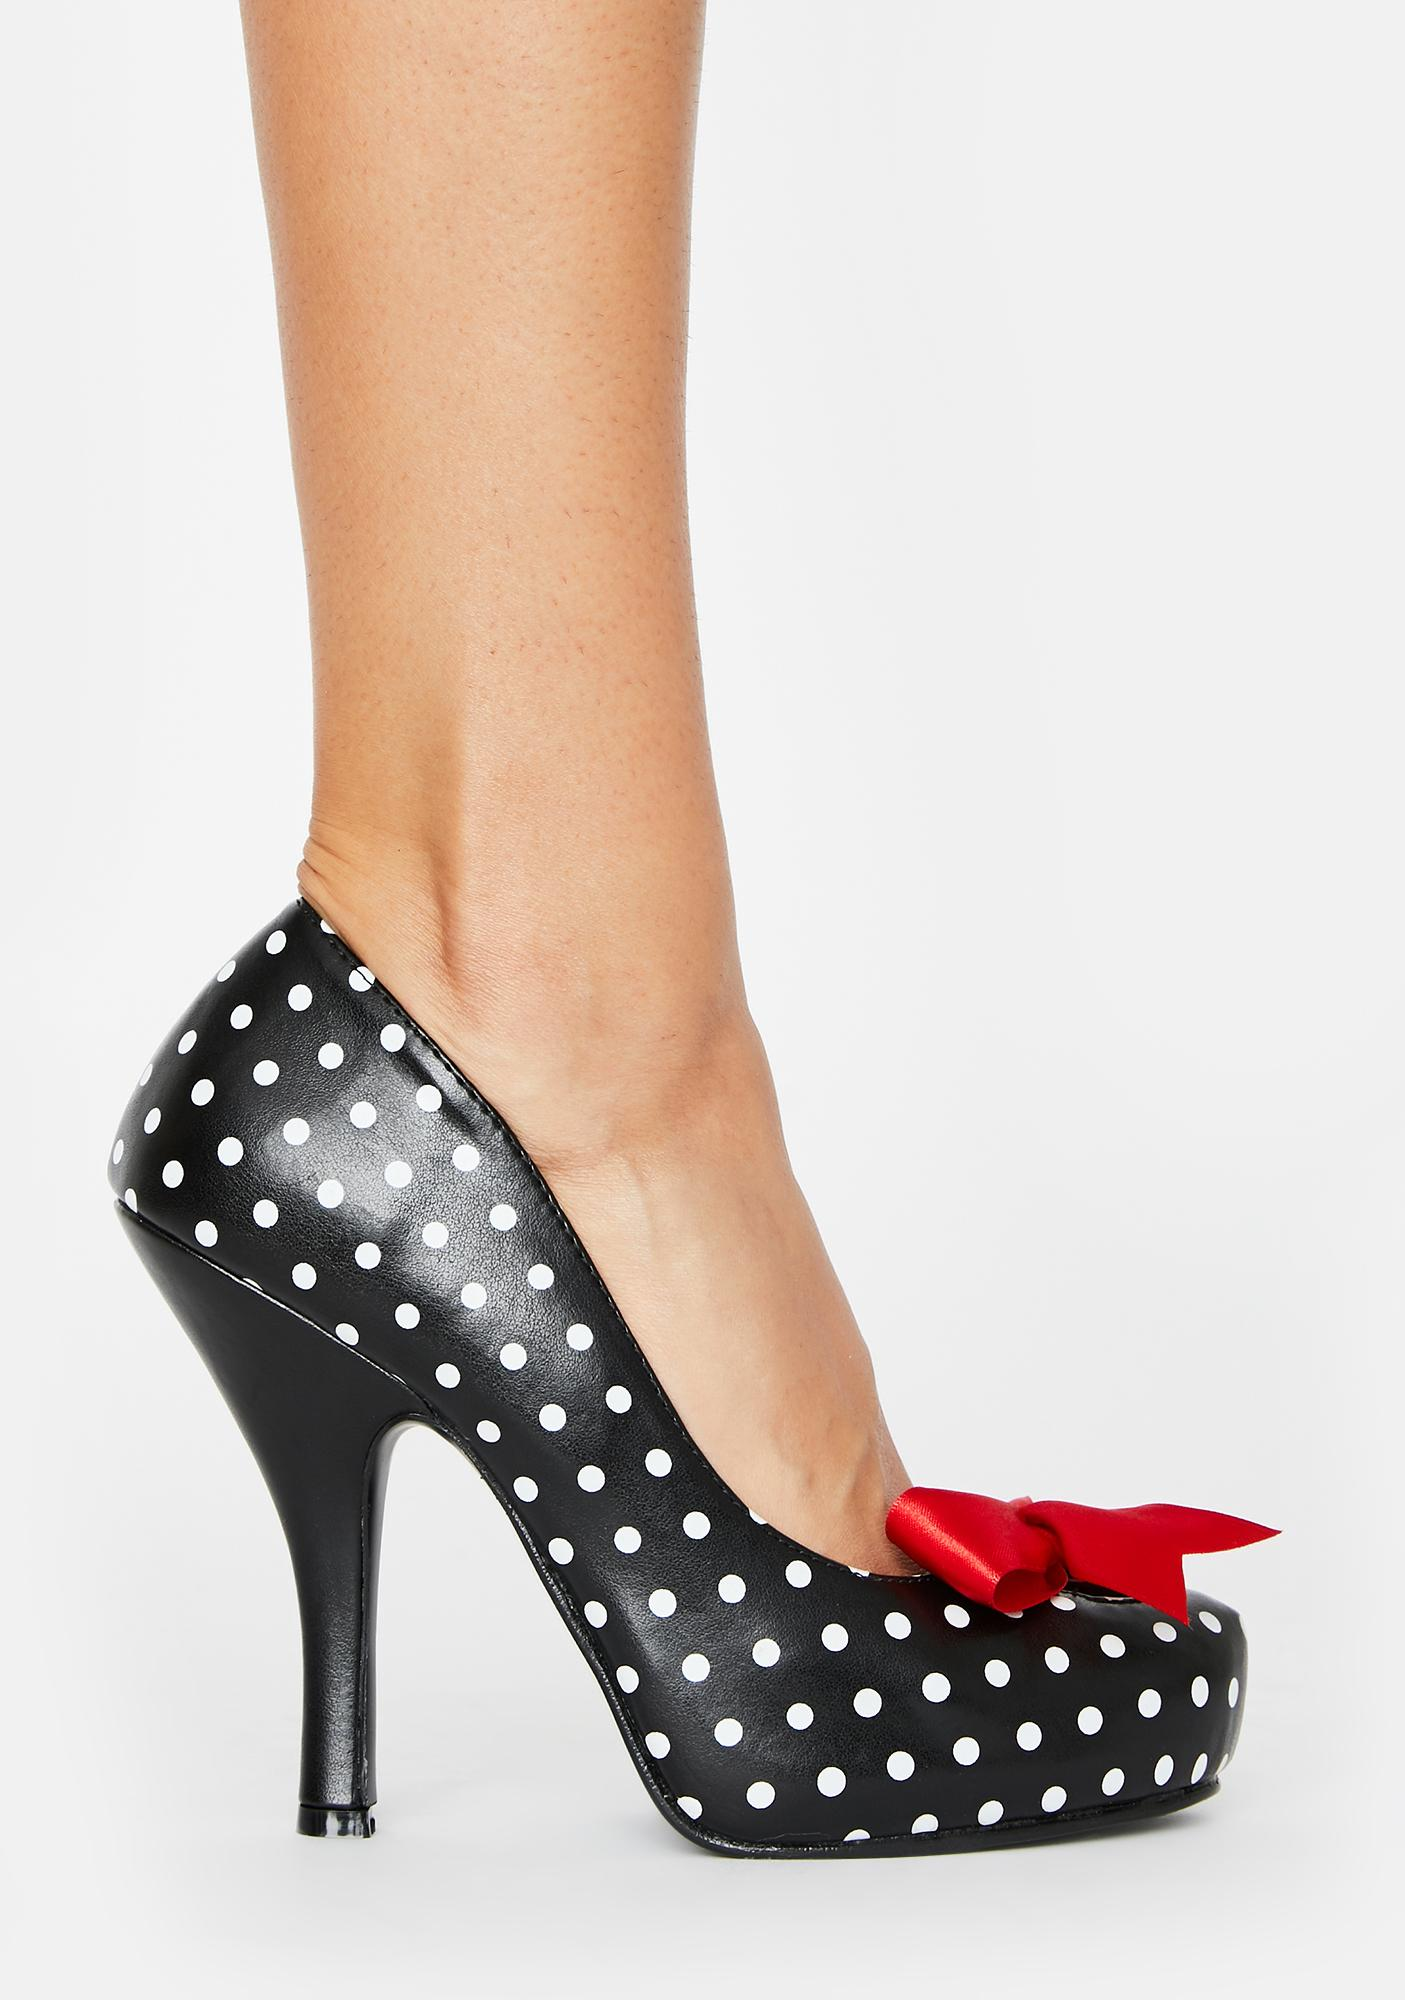 Pin Up Couture Polka Dot Cutie Heels